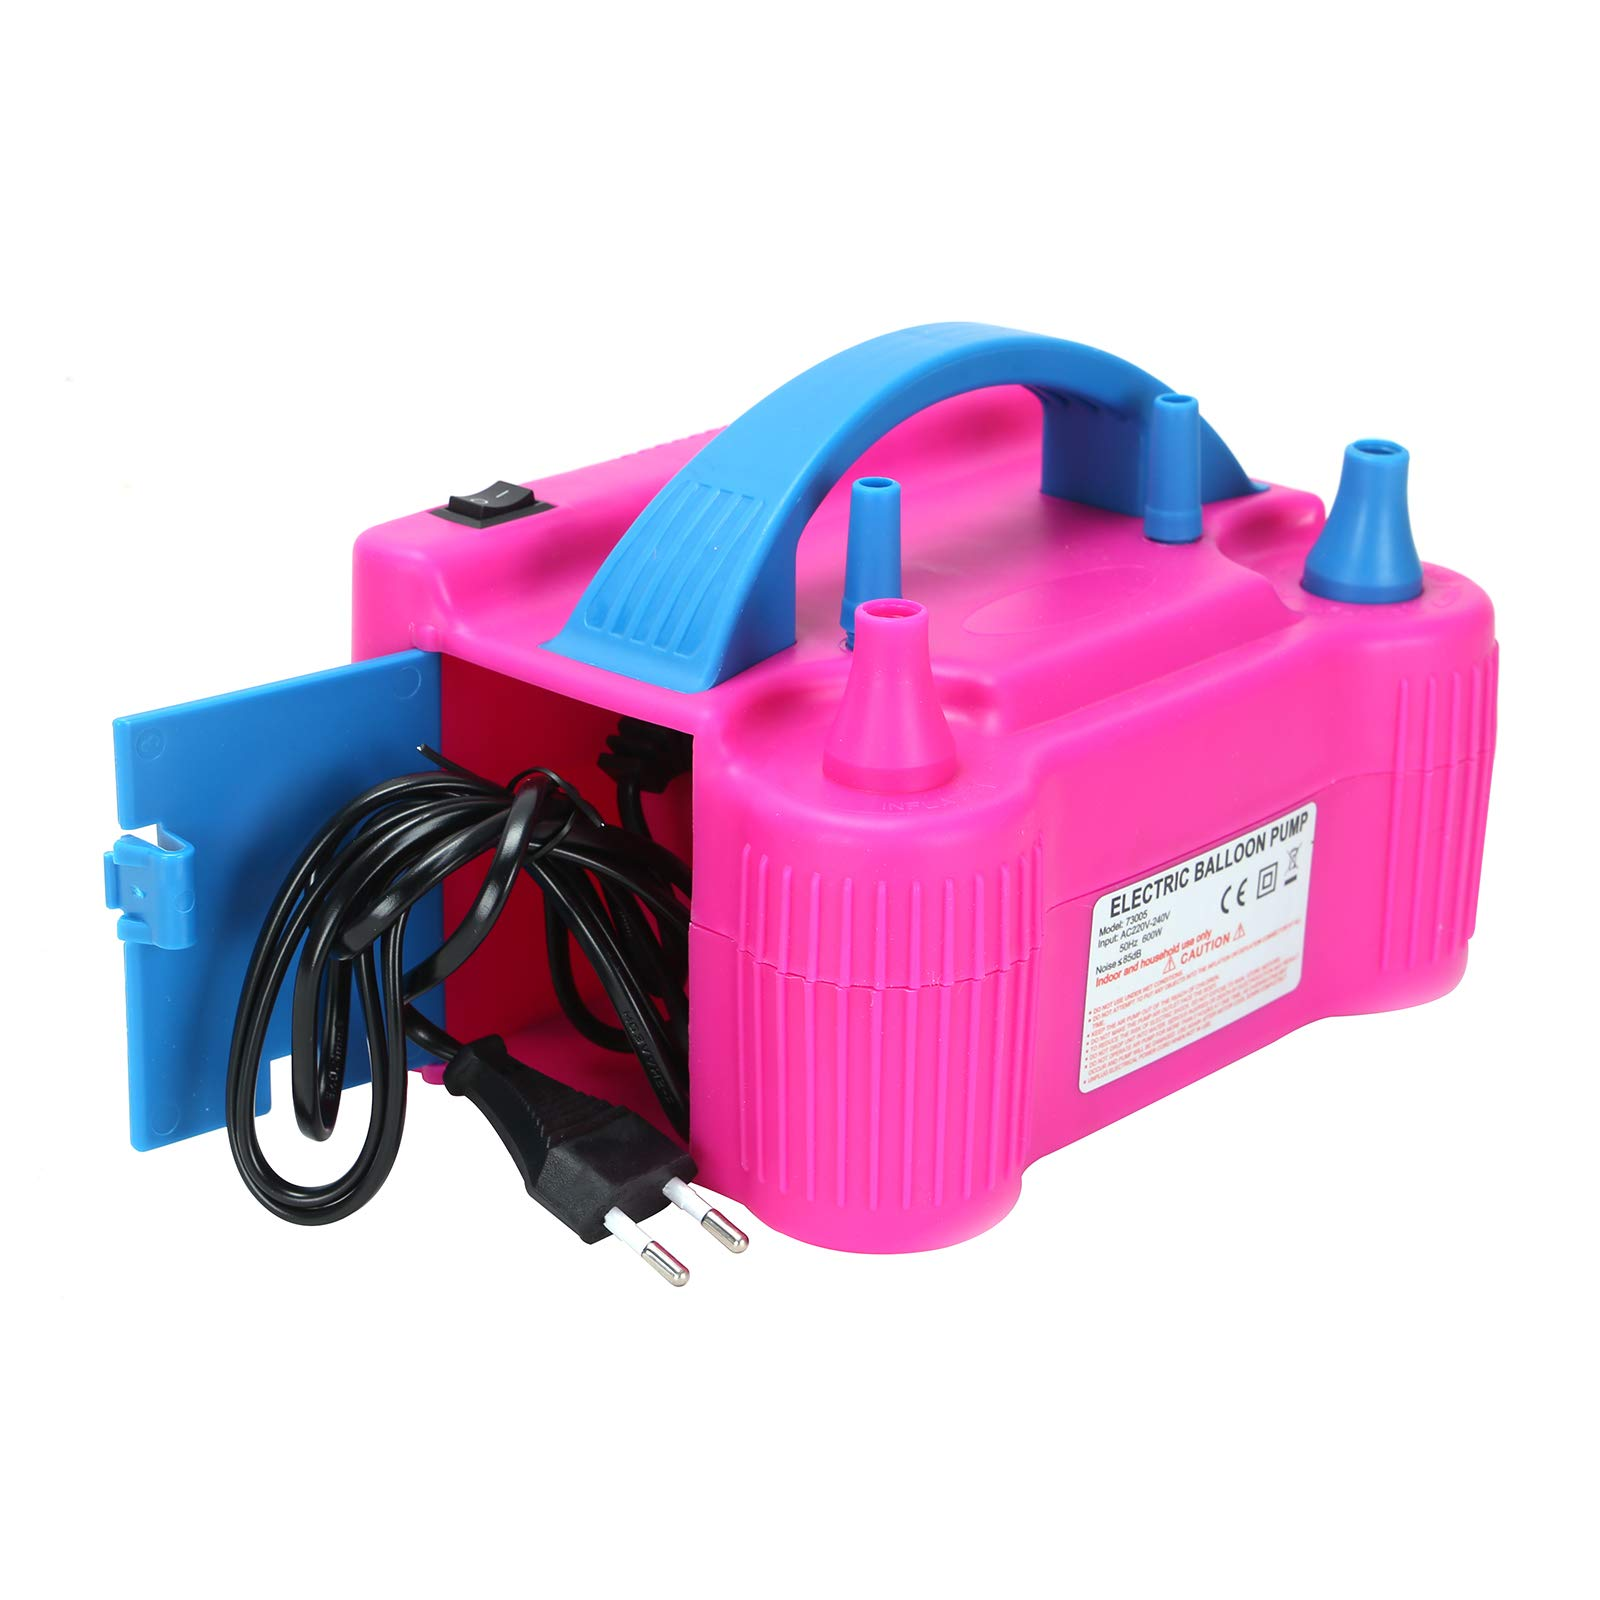 Voniry balloon pump mini size high efficiency 300W 220-240V Lightweight and easy to use